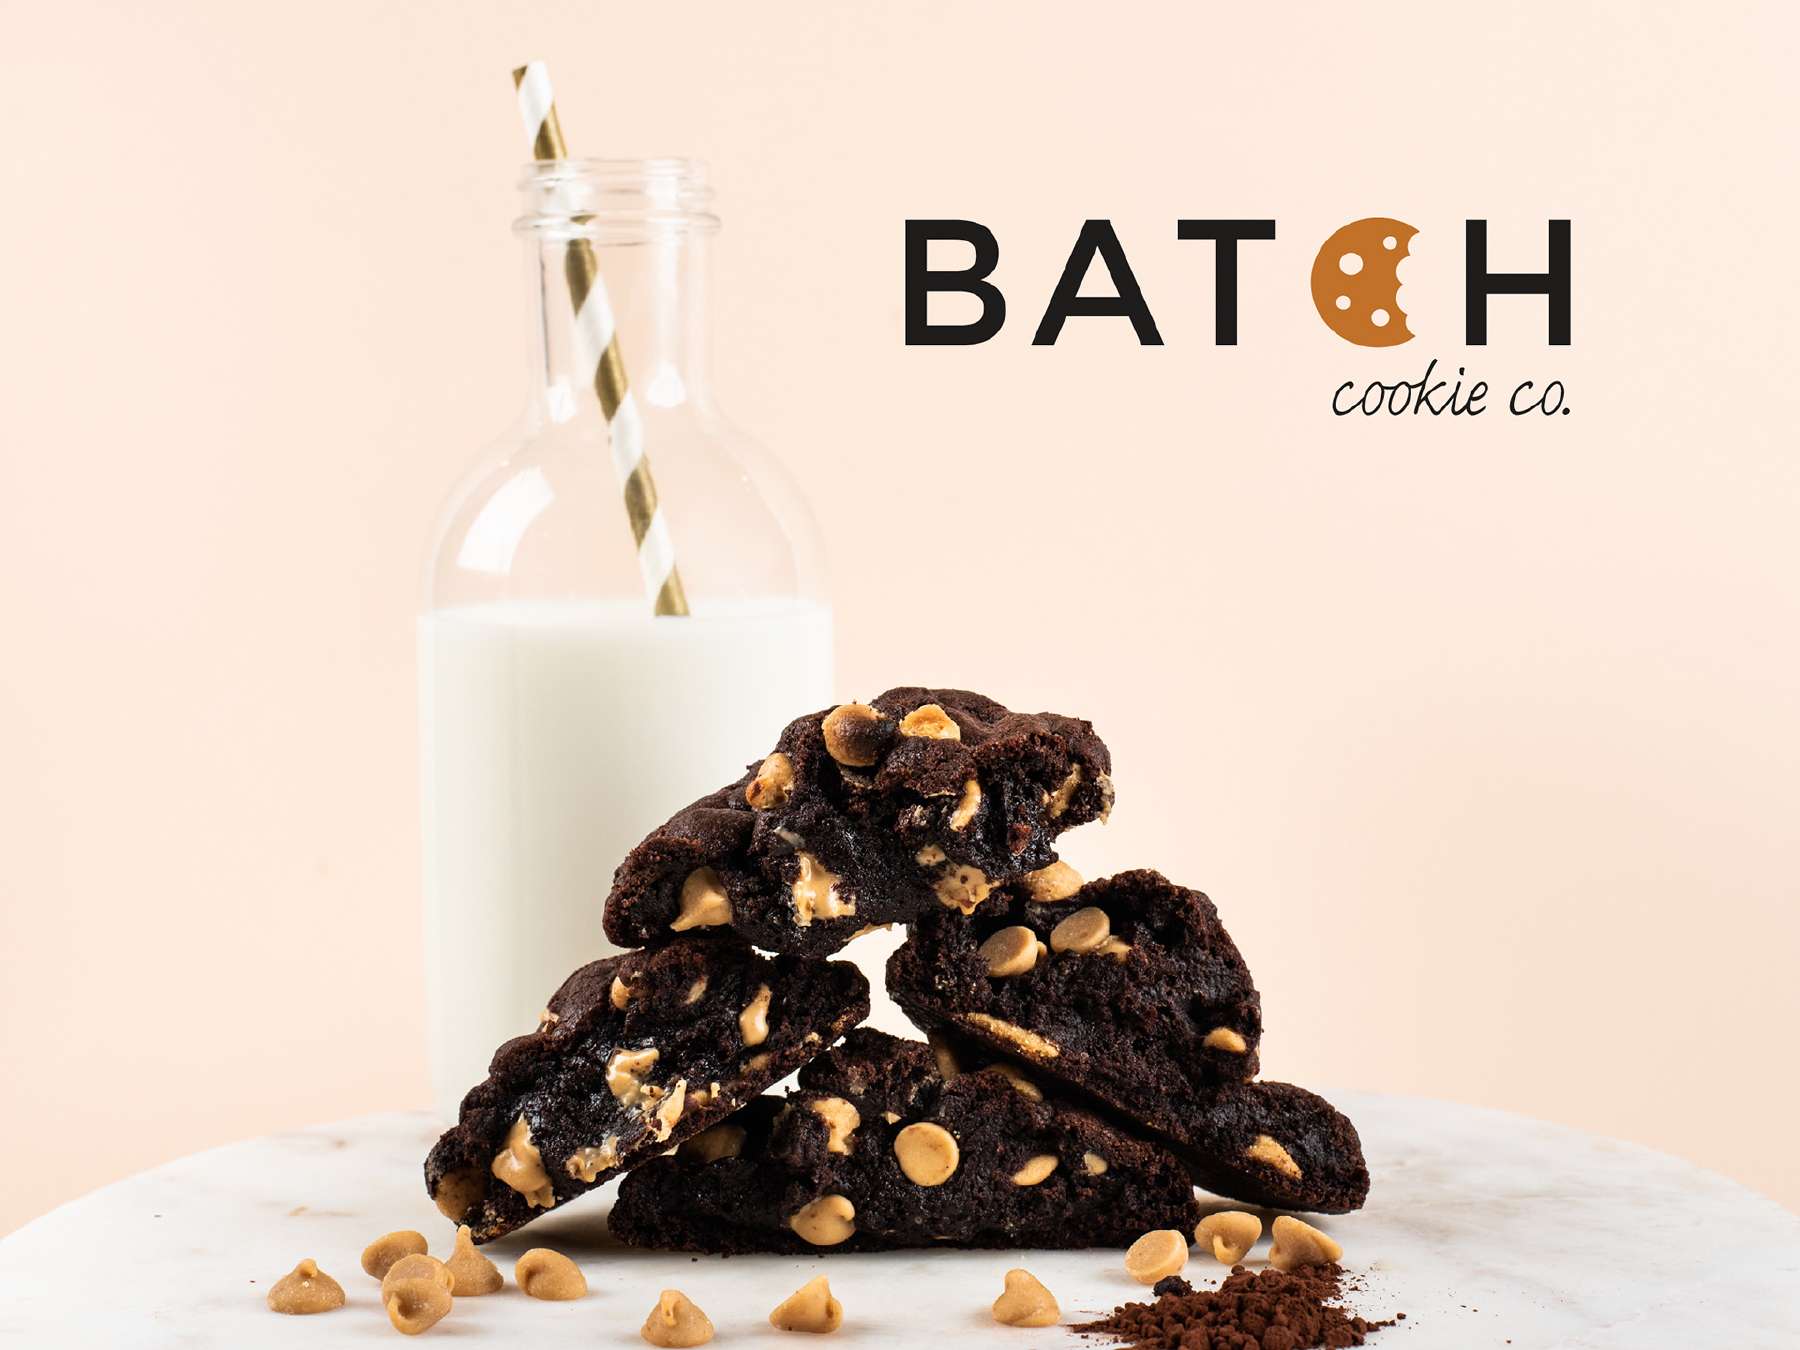 Logo Design & Branding Batch Cookie Co.